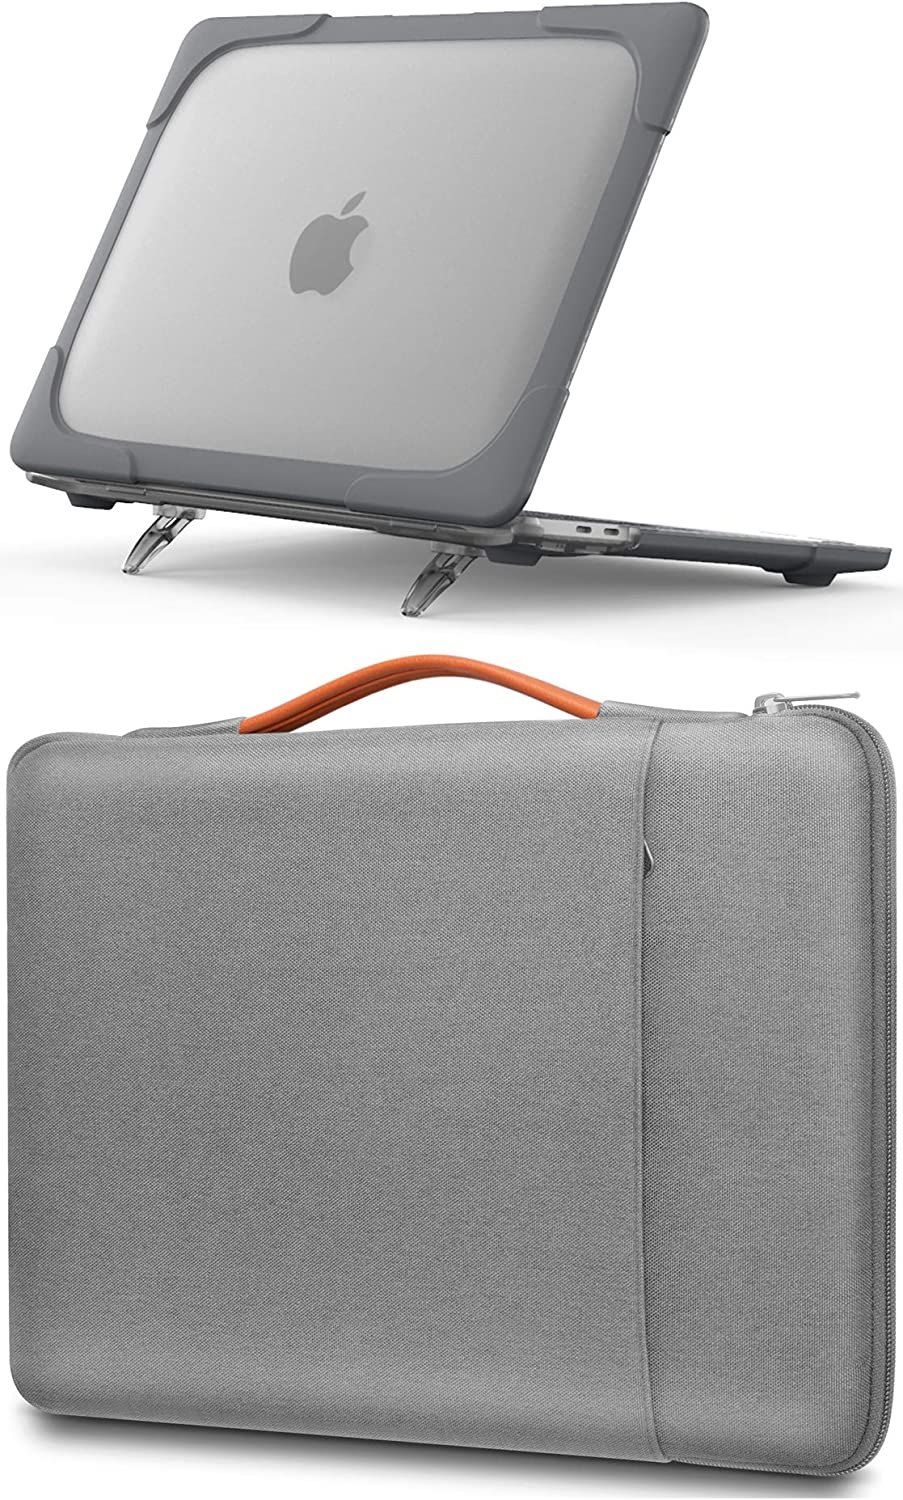 ProCase MacBook Pro 13 Inch Grey Hard Shell Case(A2289/A2251) + Light Grey Sleeve Bag, Compatible with 2020 Released MacBook Pro New 13-inch Model A2289/ A2251 – Grey+ Light Grey